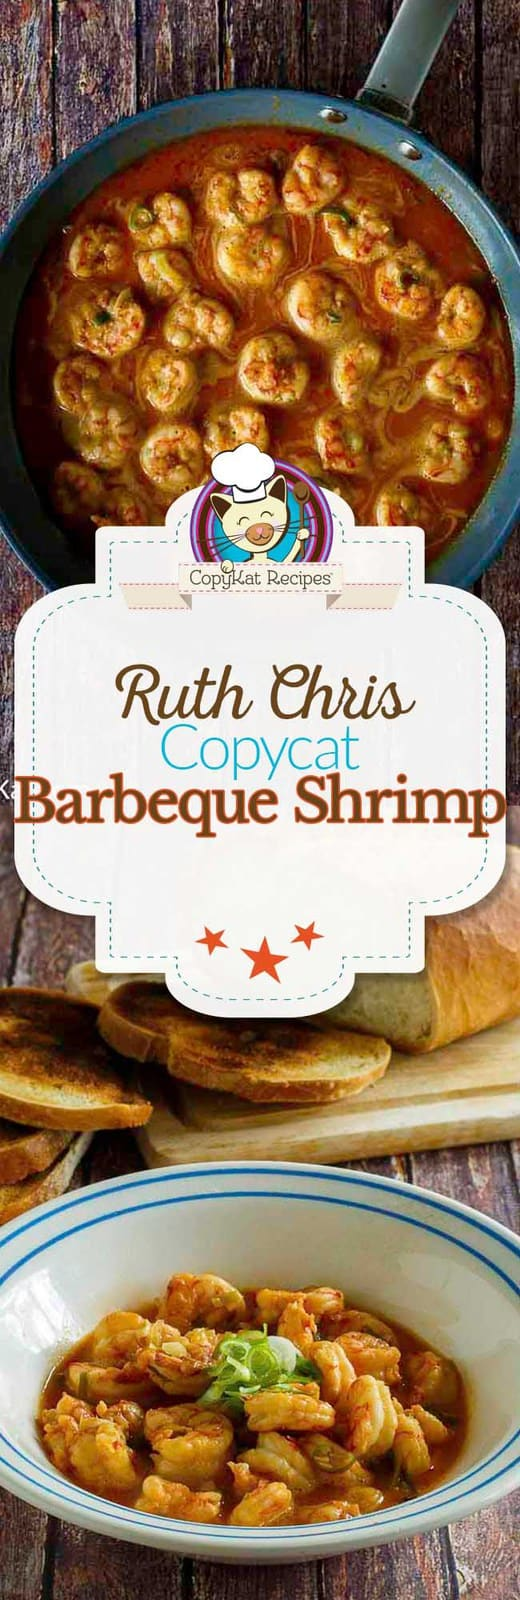 Make your own Ruth Chris Steakhouse Barbeque Shrimp at home with this easy copycat recipe. #meatless #seafood #shrimp #copycat #ruthchris #stovetop #homemade